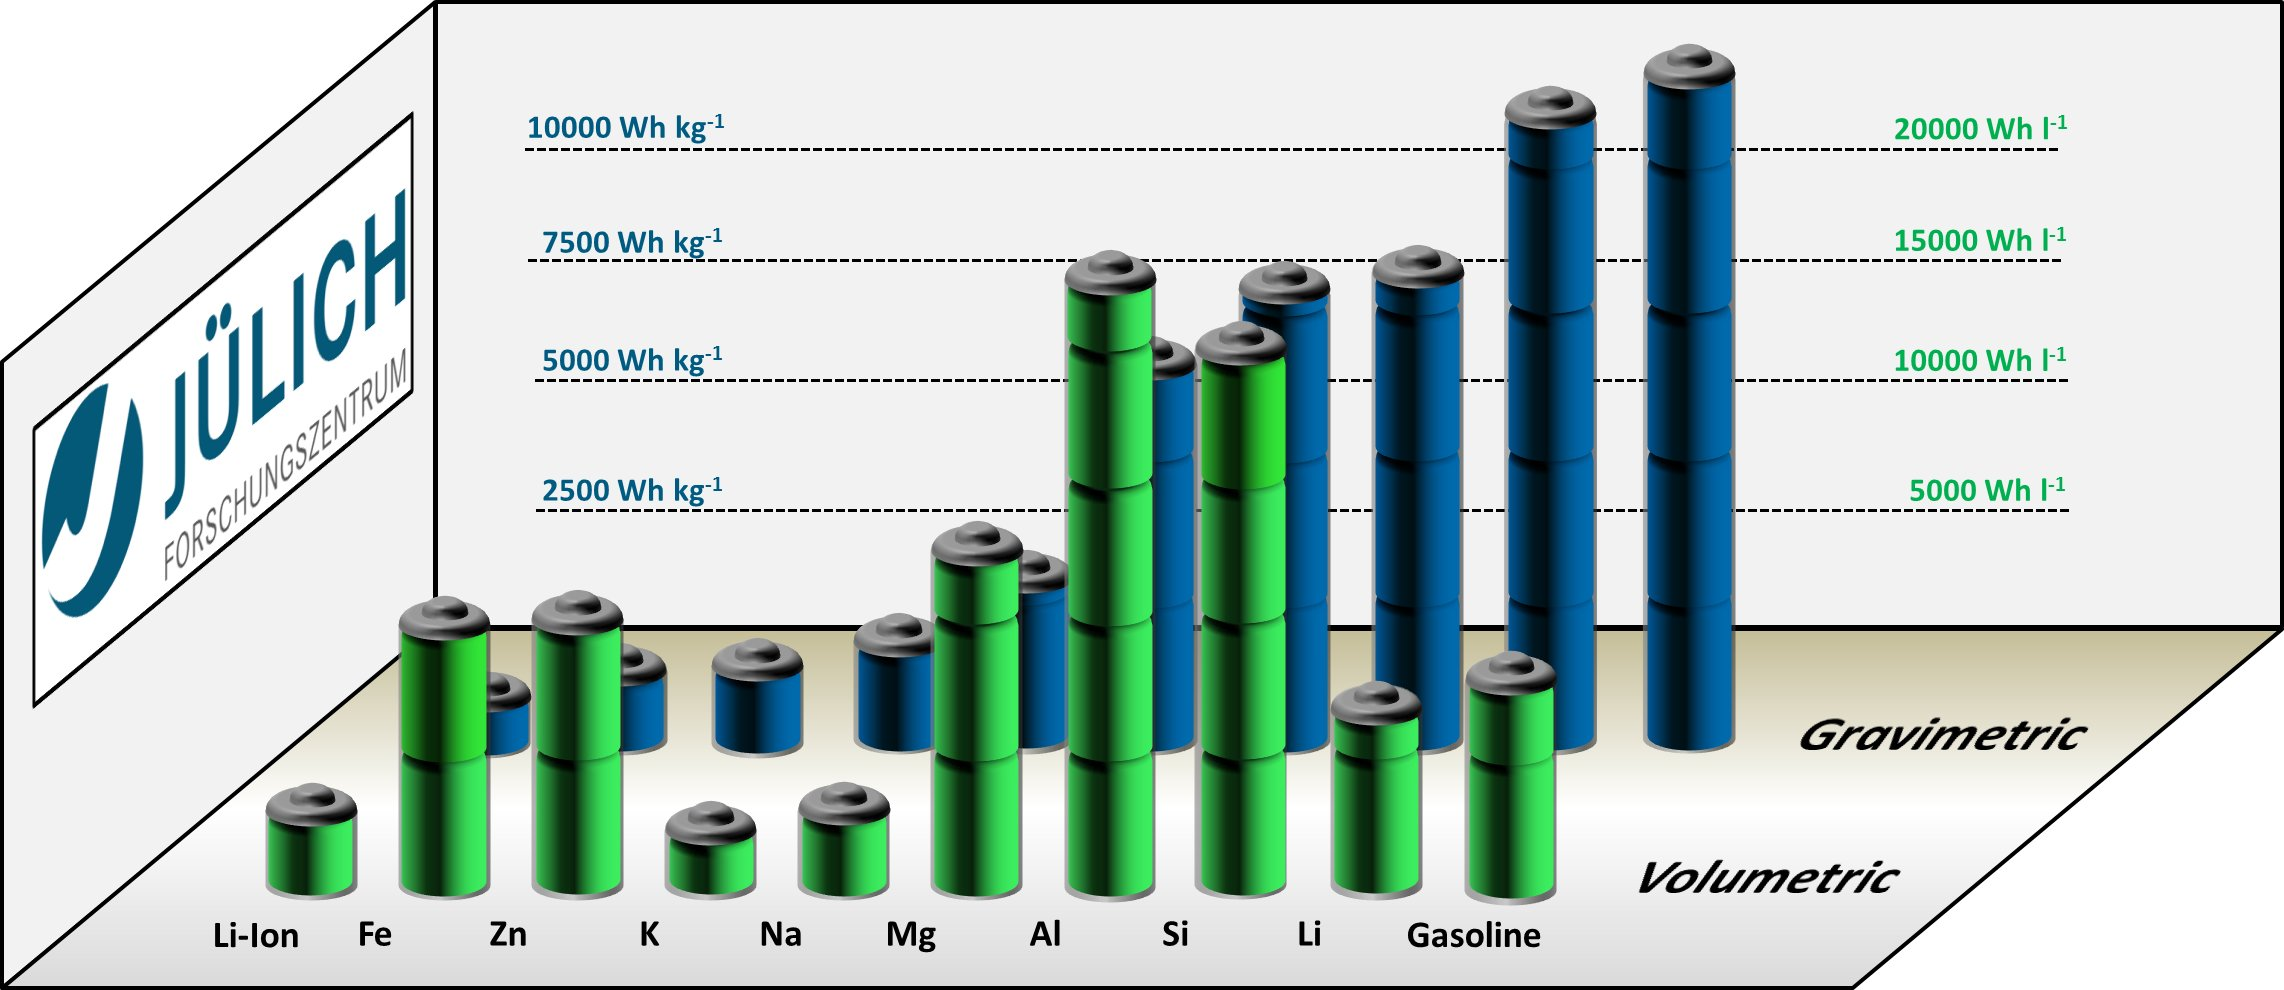 Gravimetric and volumetric energy densities of various metal-air battery  systems in comparison with Li-ion batteries and conventional gasoline.